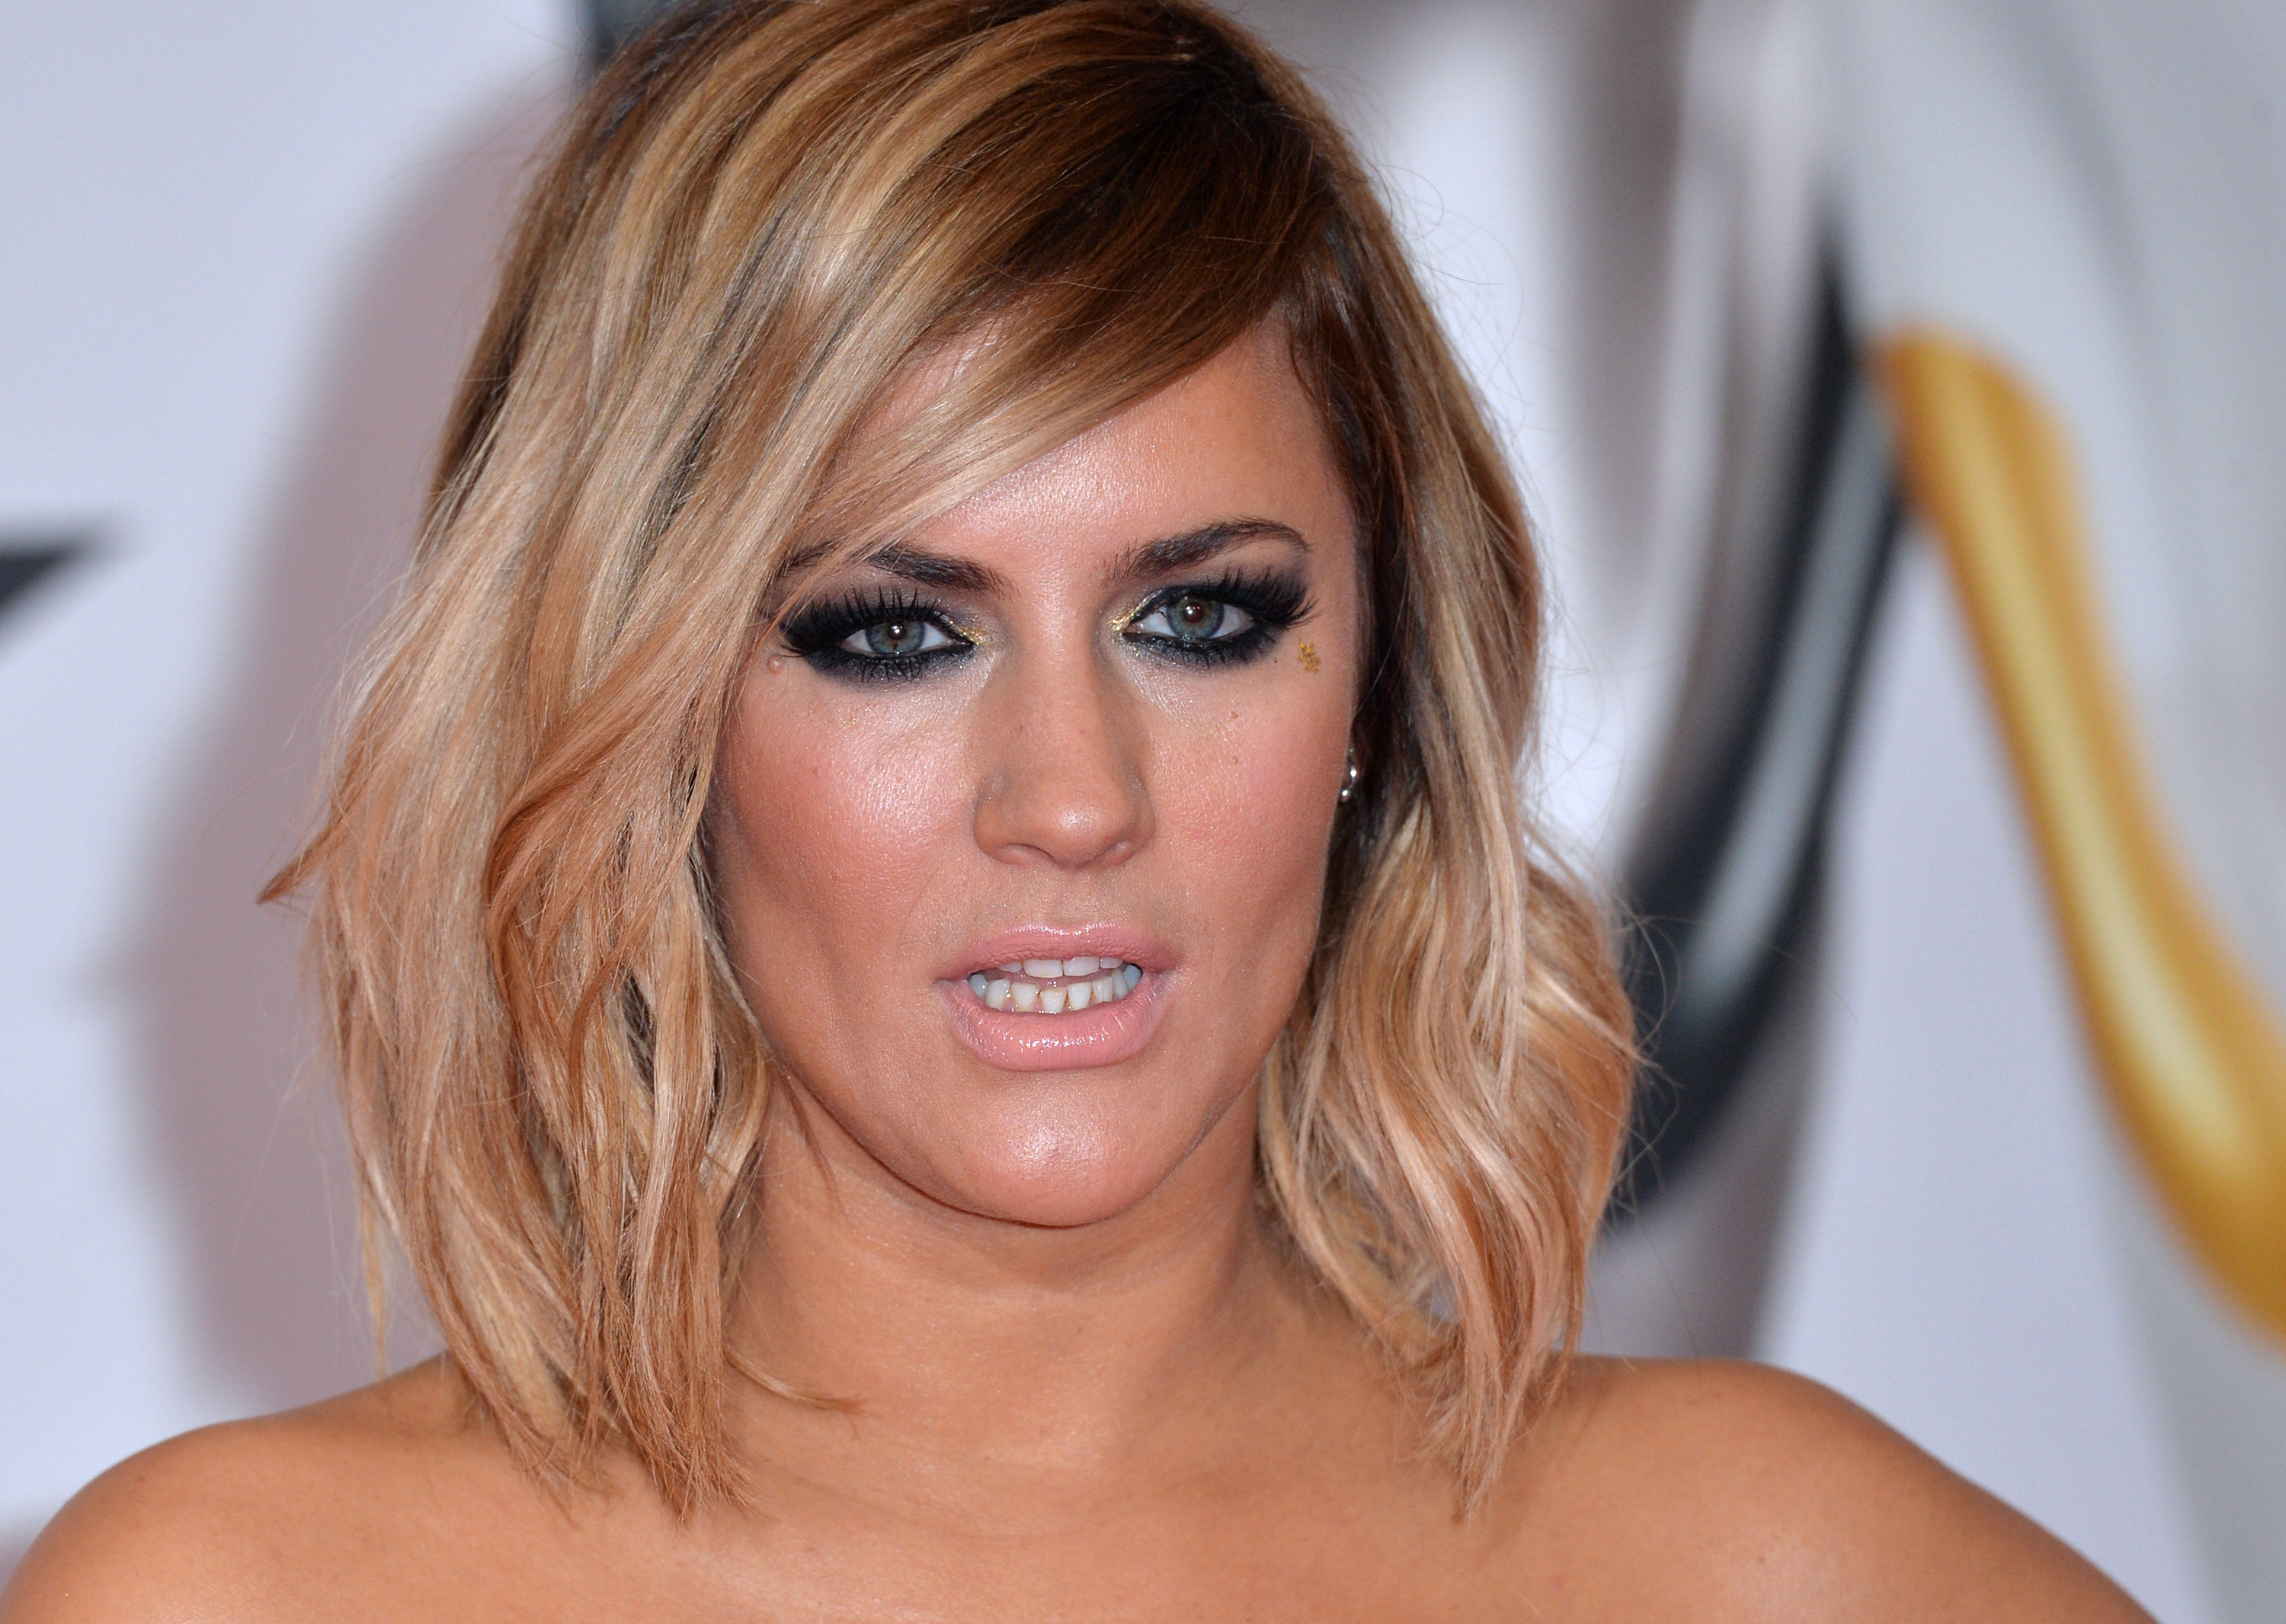 LONDON, ENGLAND - FEBRUARY 24: Caroline Flack attends the BRIT Awards 2016 at The O2 Arena on February 24, 2016 in London, England. (Photo by Anthony Harvey/Getty Images)